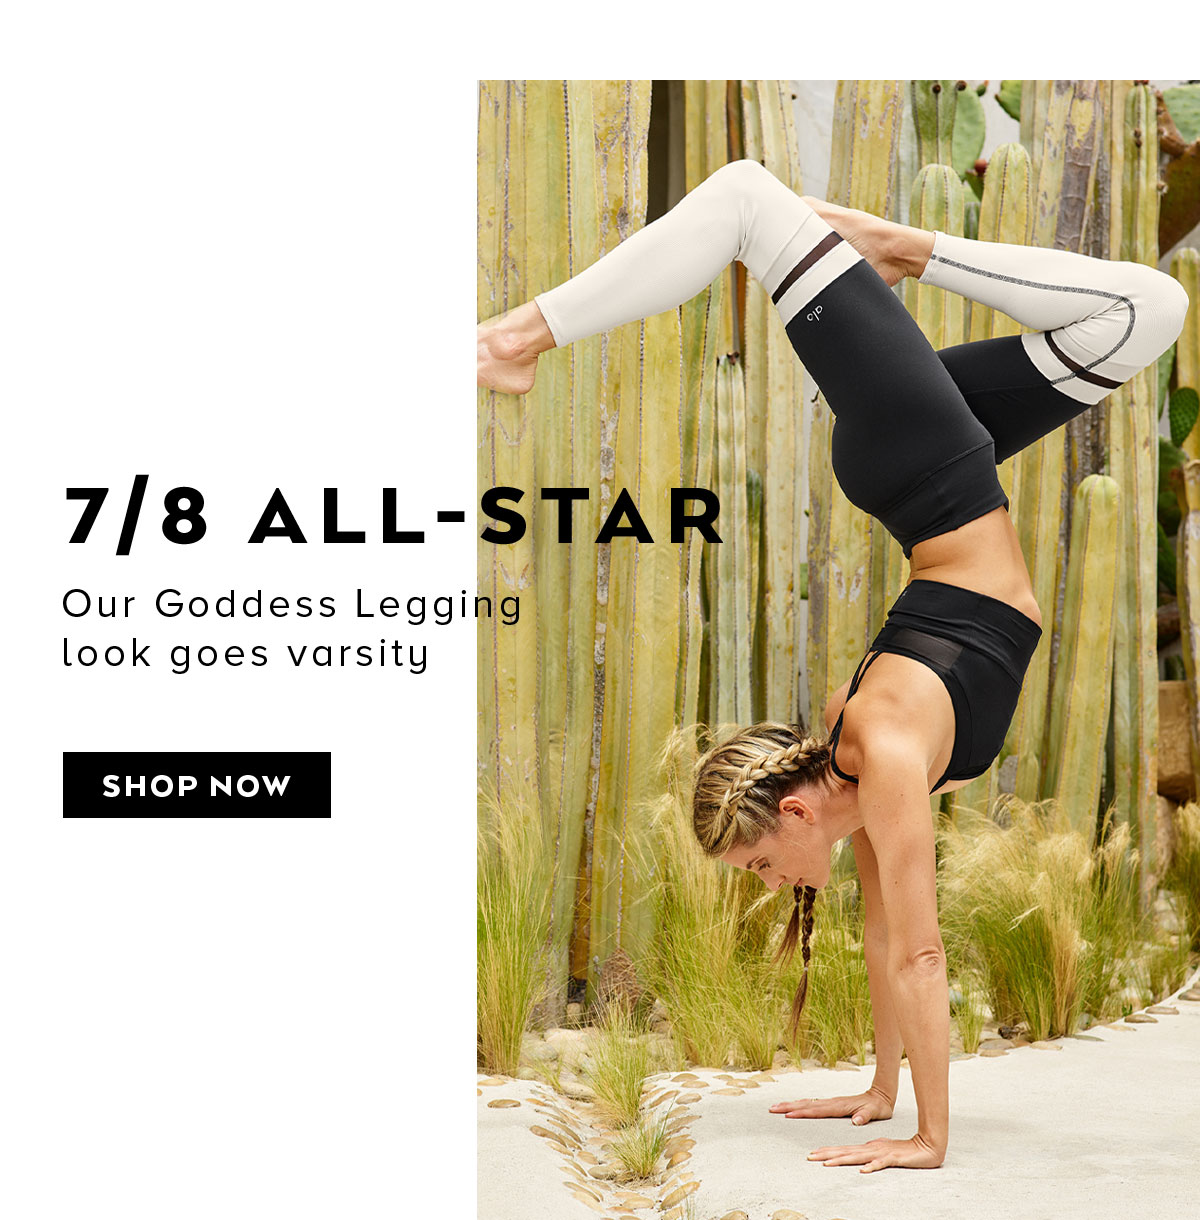 7/8 ALL-STAR. Our Goddess Legging look goes varsity. SHOP NOW